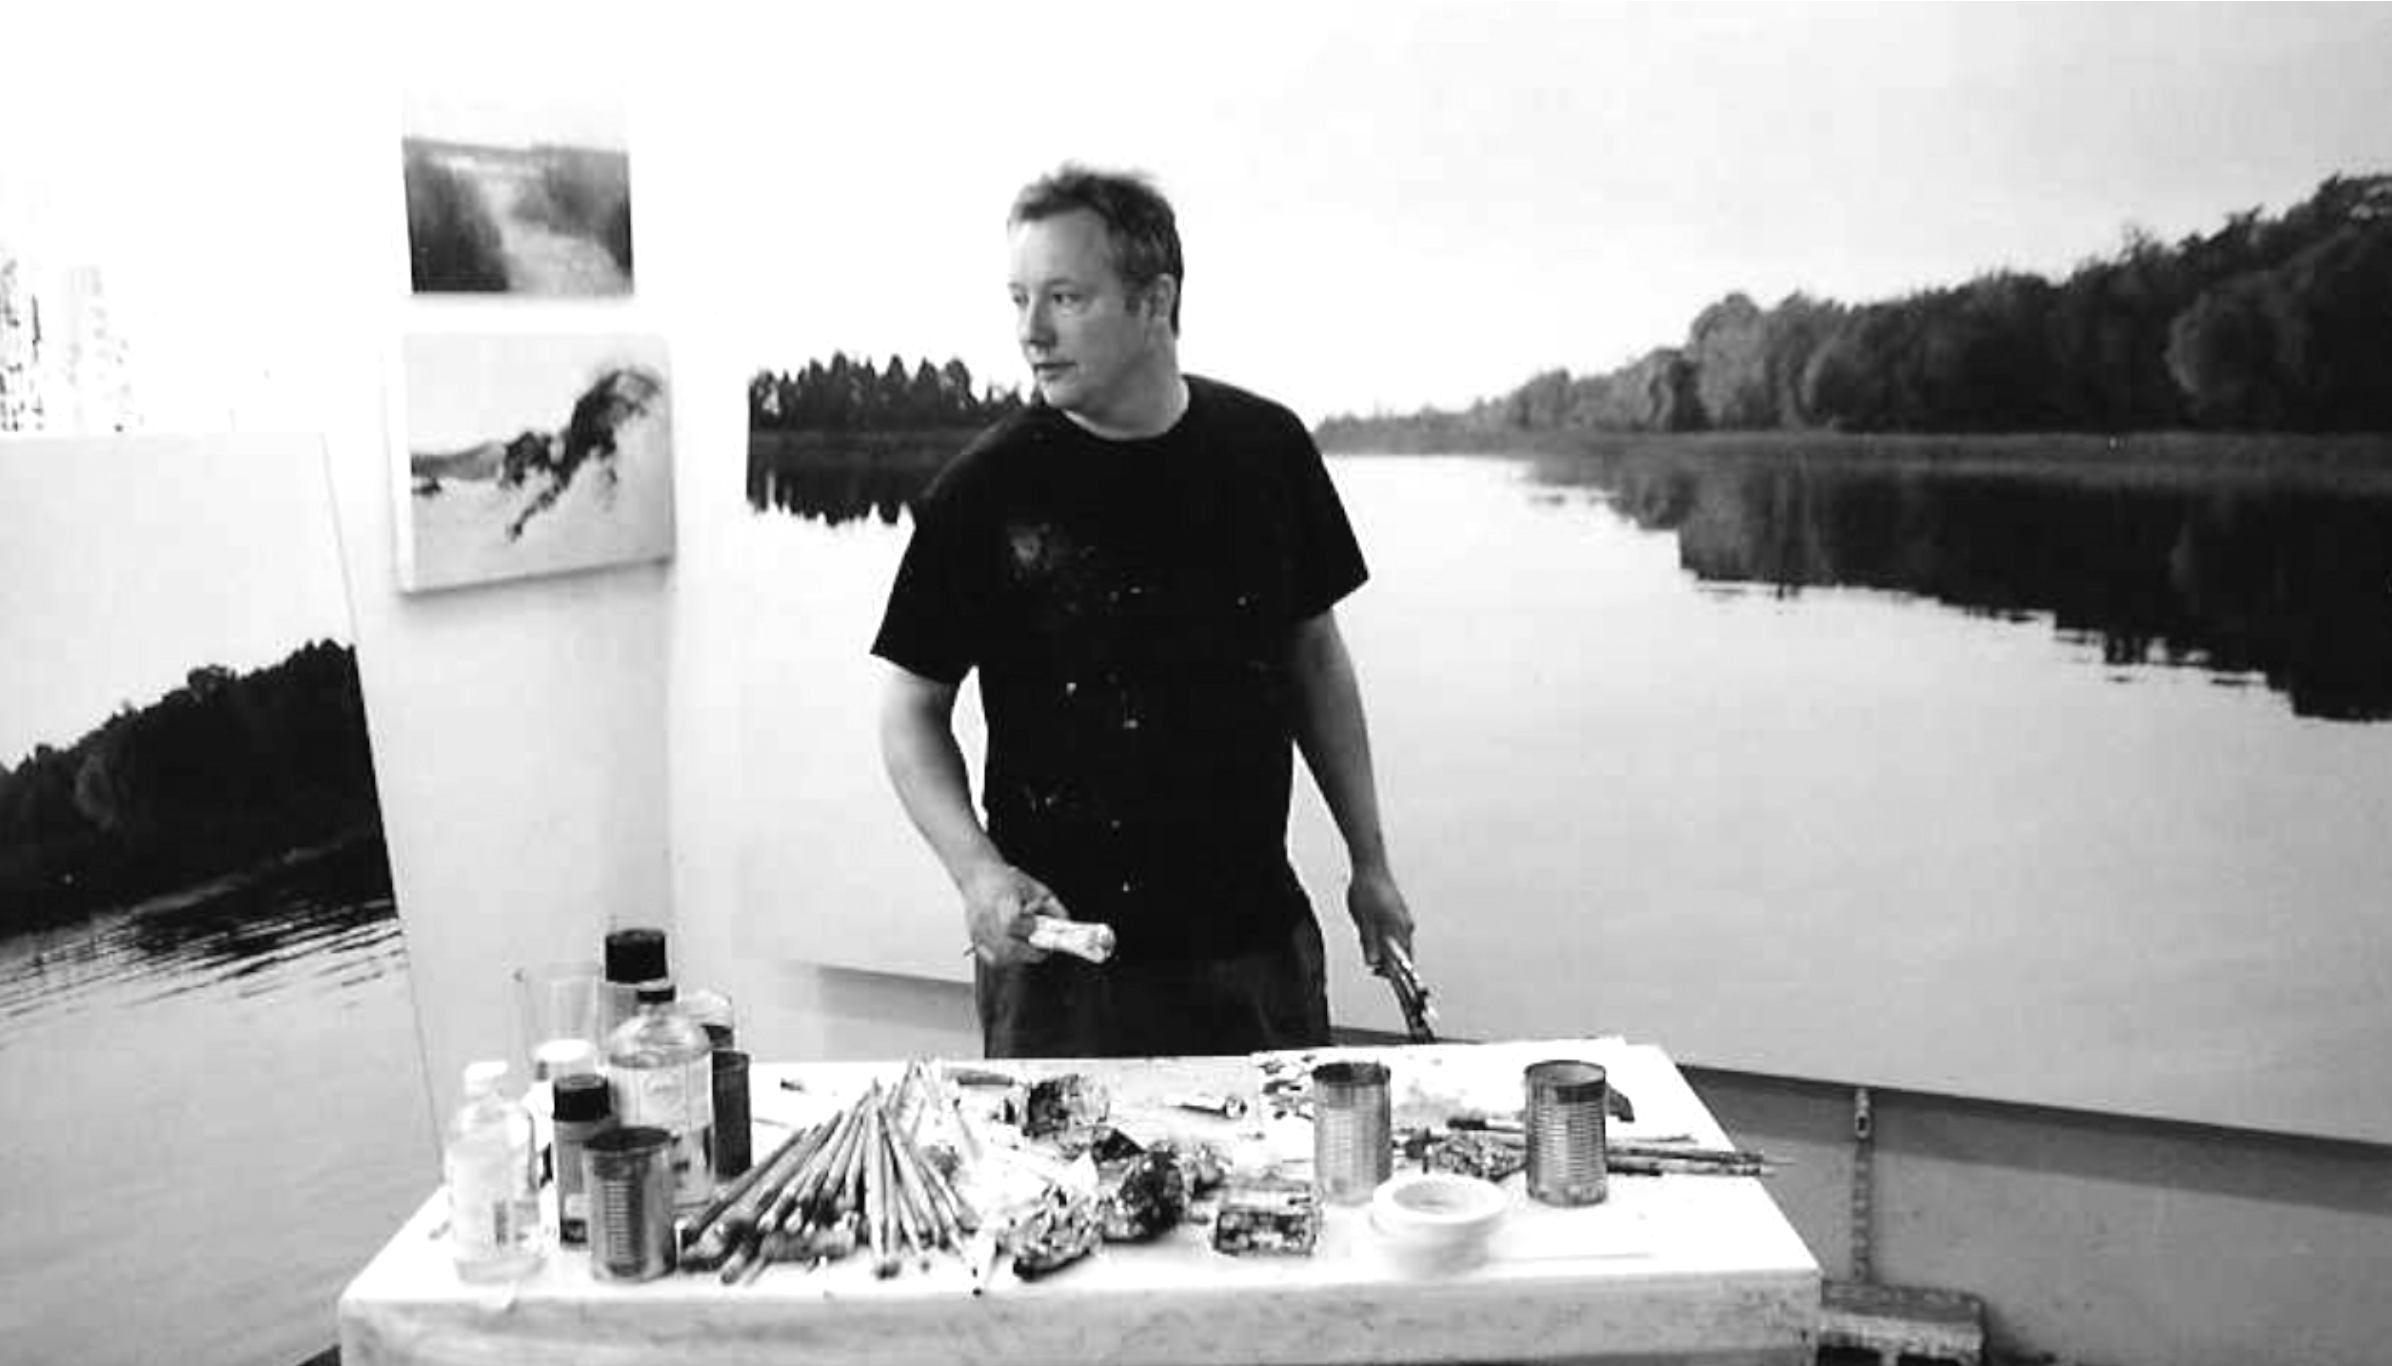 ben painting b:w.png